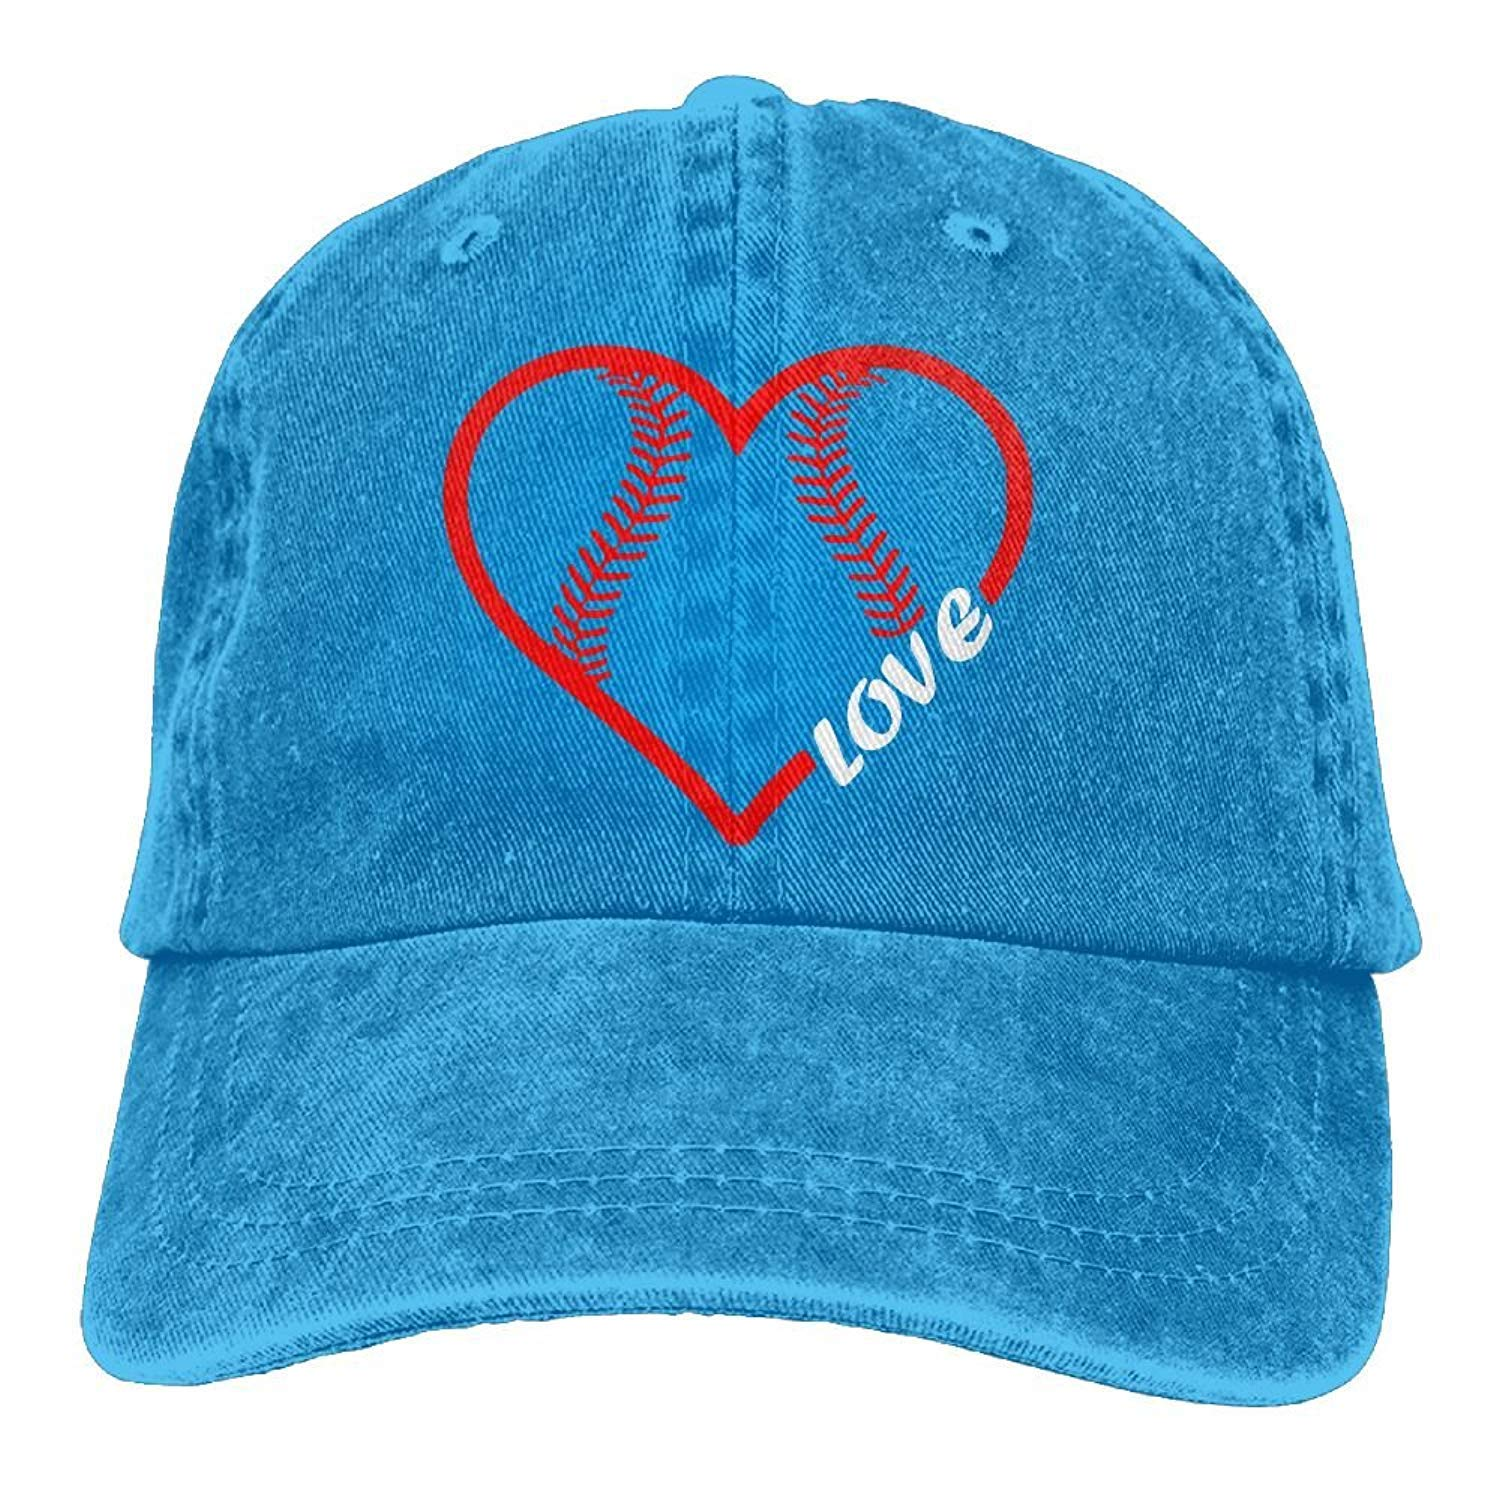 Baseball Softball Love Unisex Baseball Cap Cotton Denim Adjustable Sun Hat for Men Women